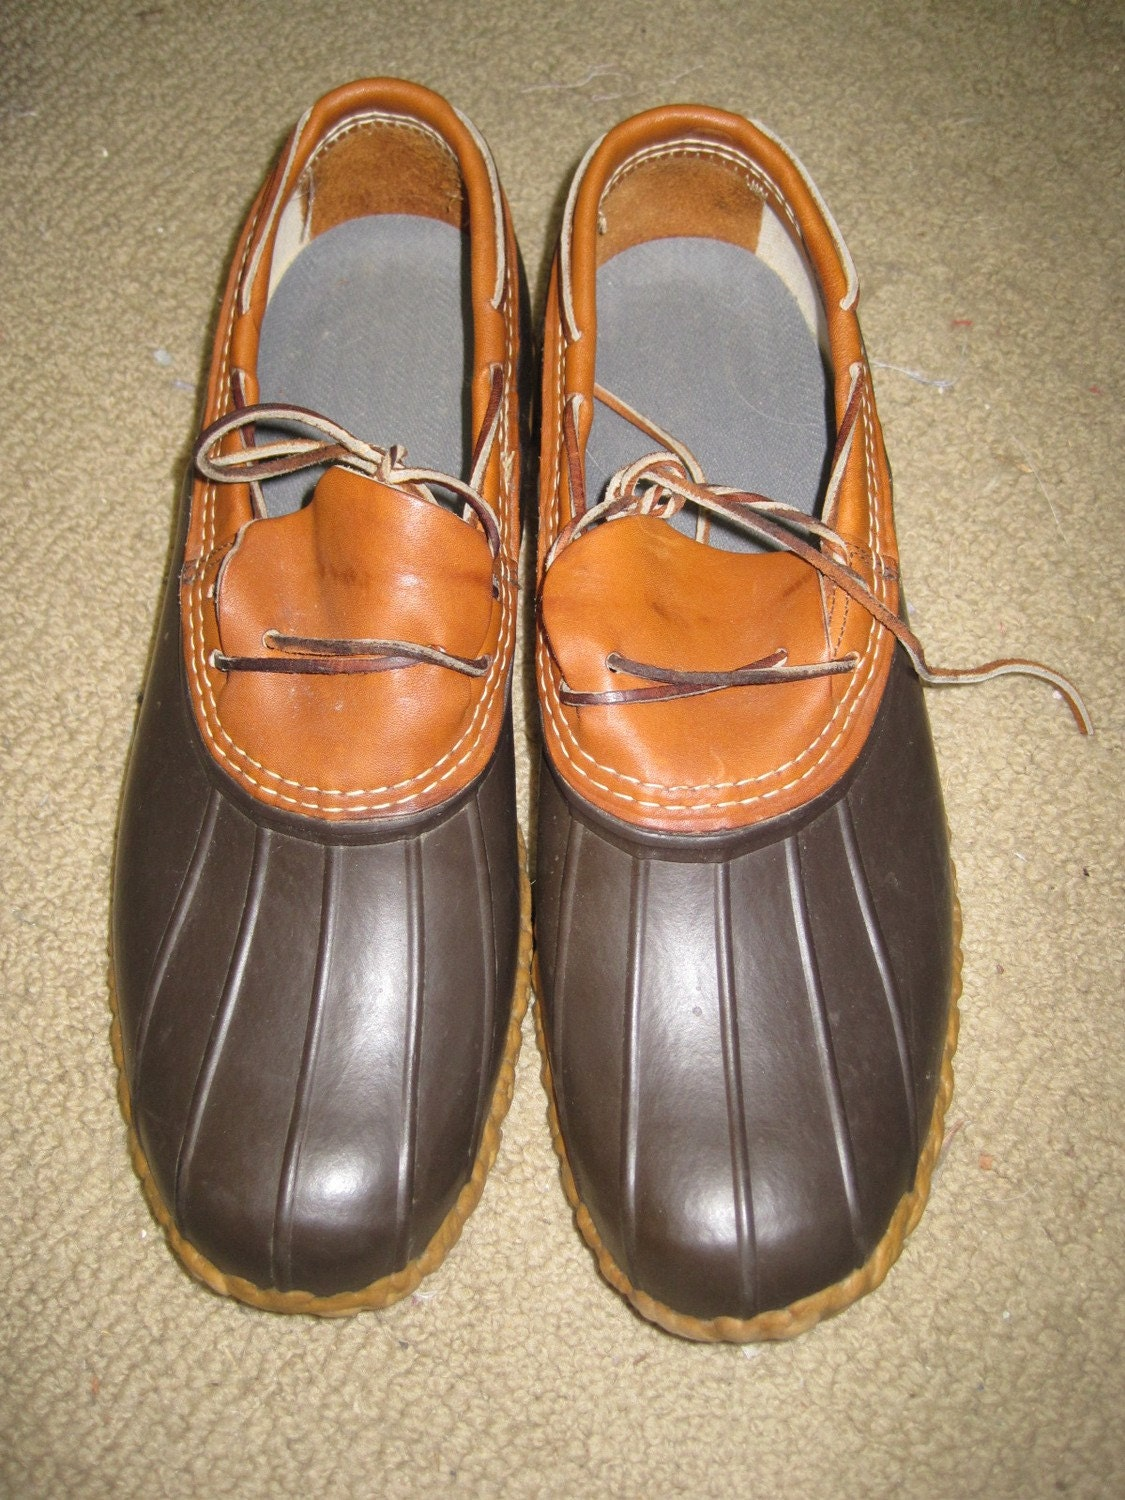 mens 13 vintage ll bean boots shoes brown by